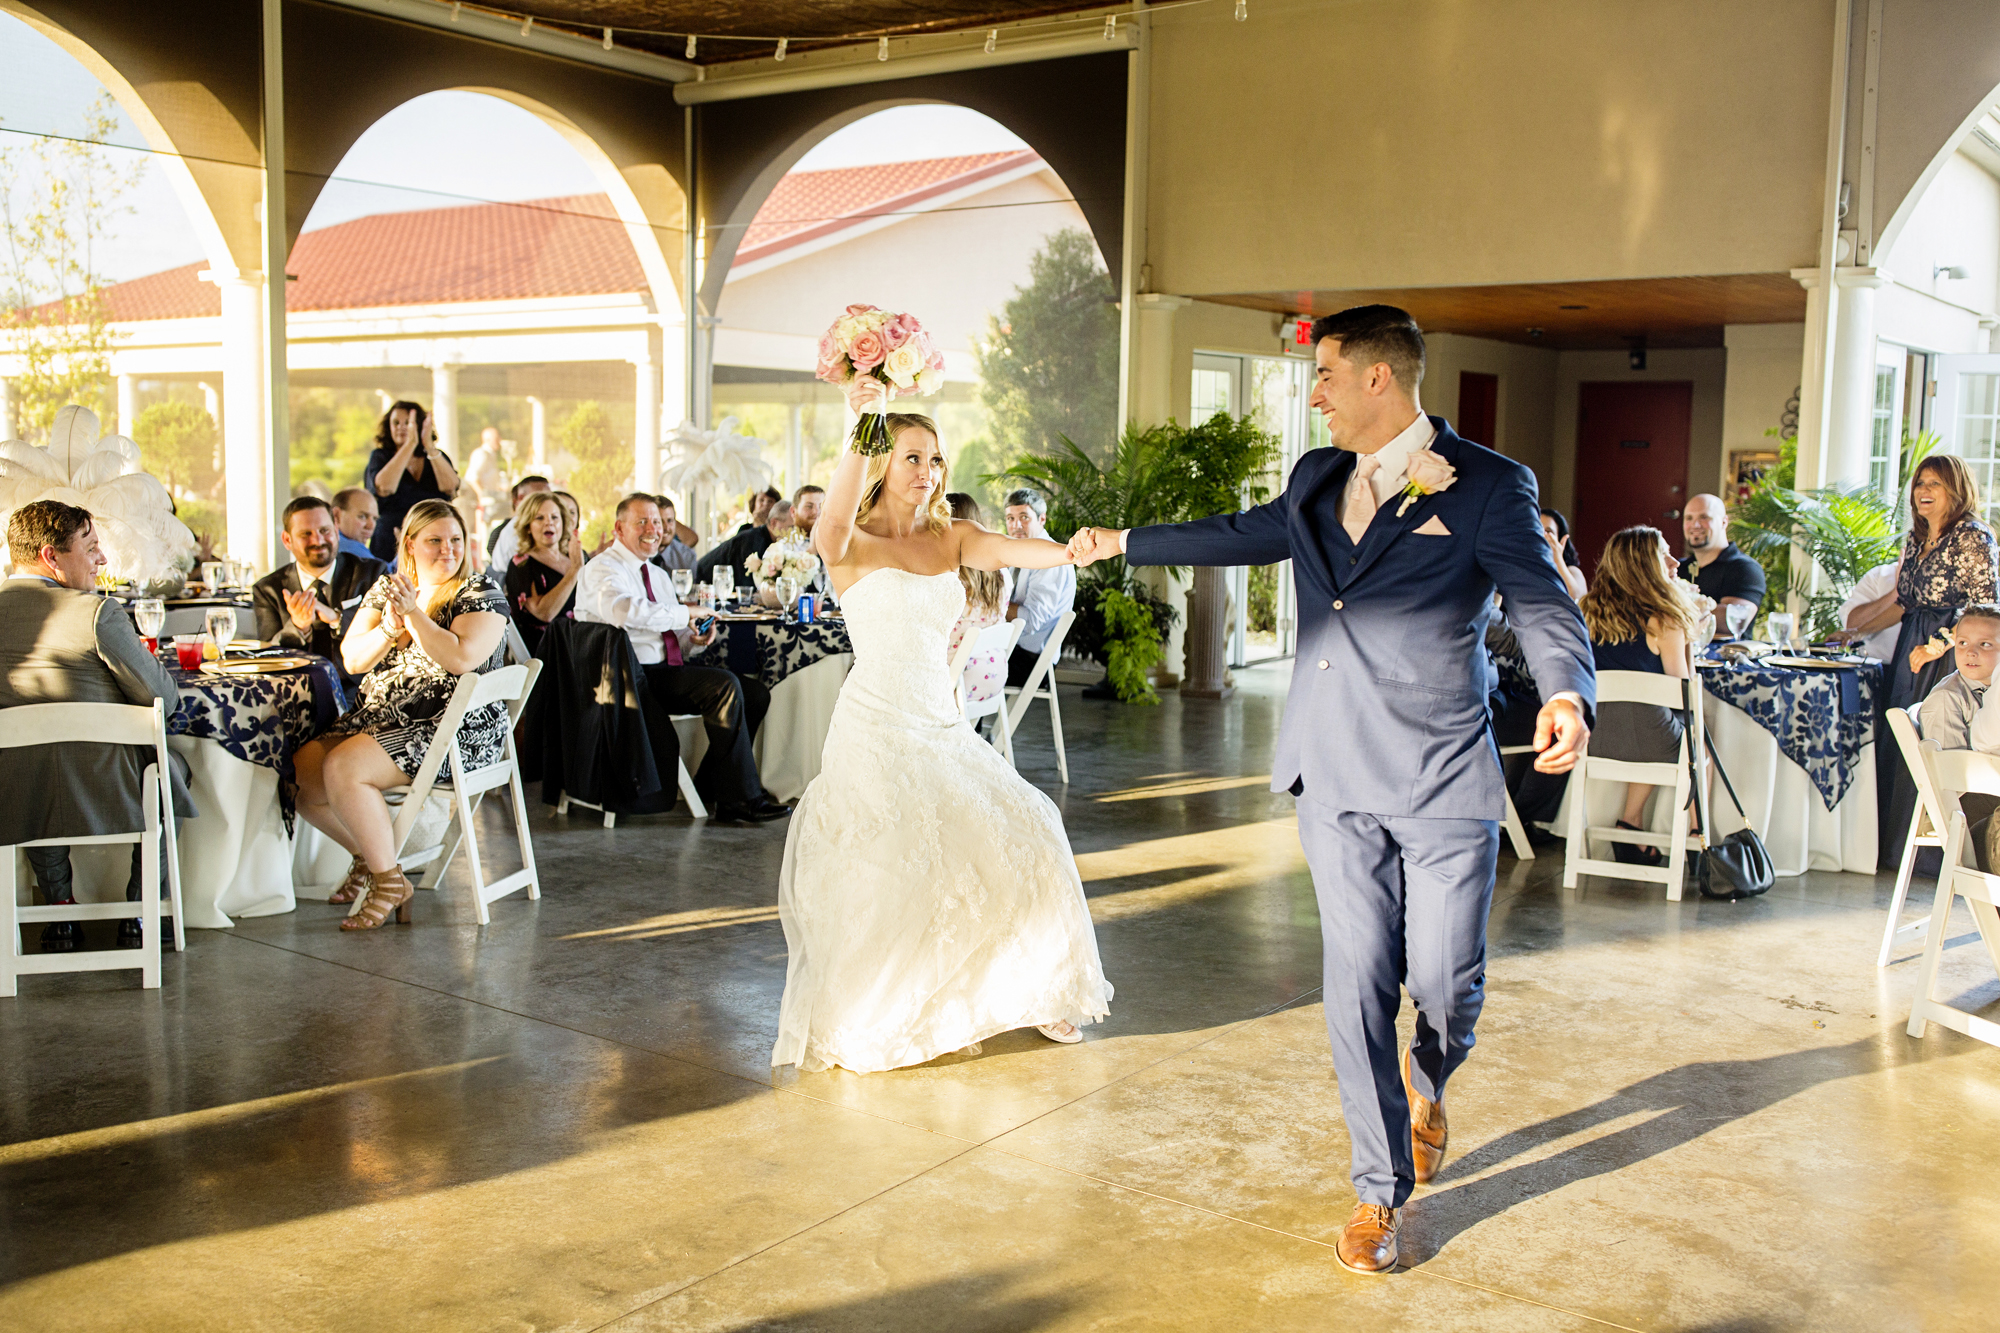 Seriously_Sabrina_Photography_Dayton_Ohio_Great_Gatsby_Wedding_Cedar_Springs_Pavillion_Harper_79.jpg